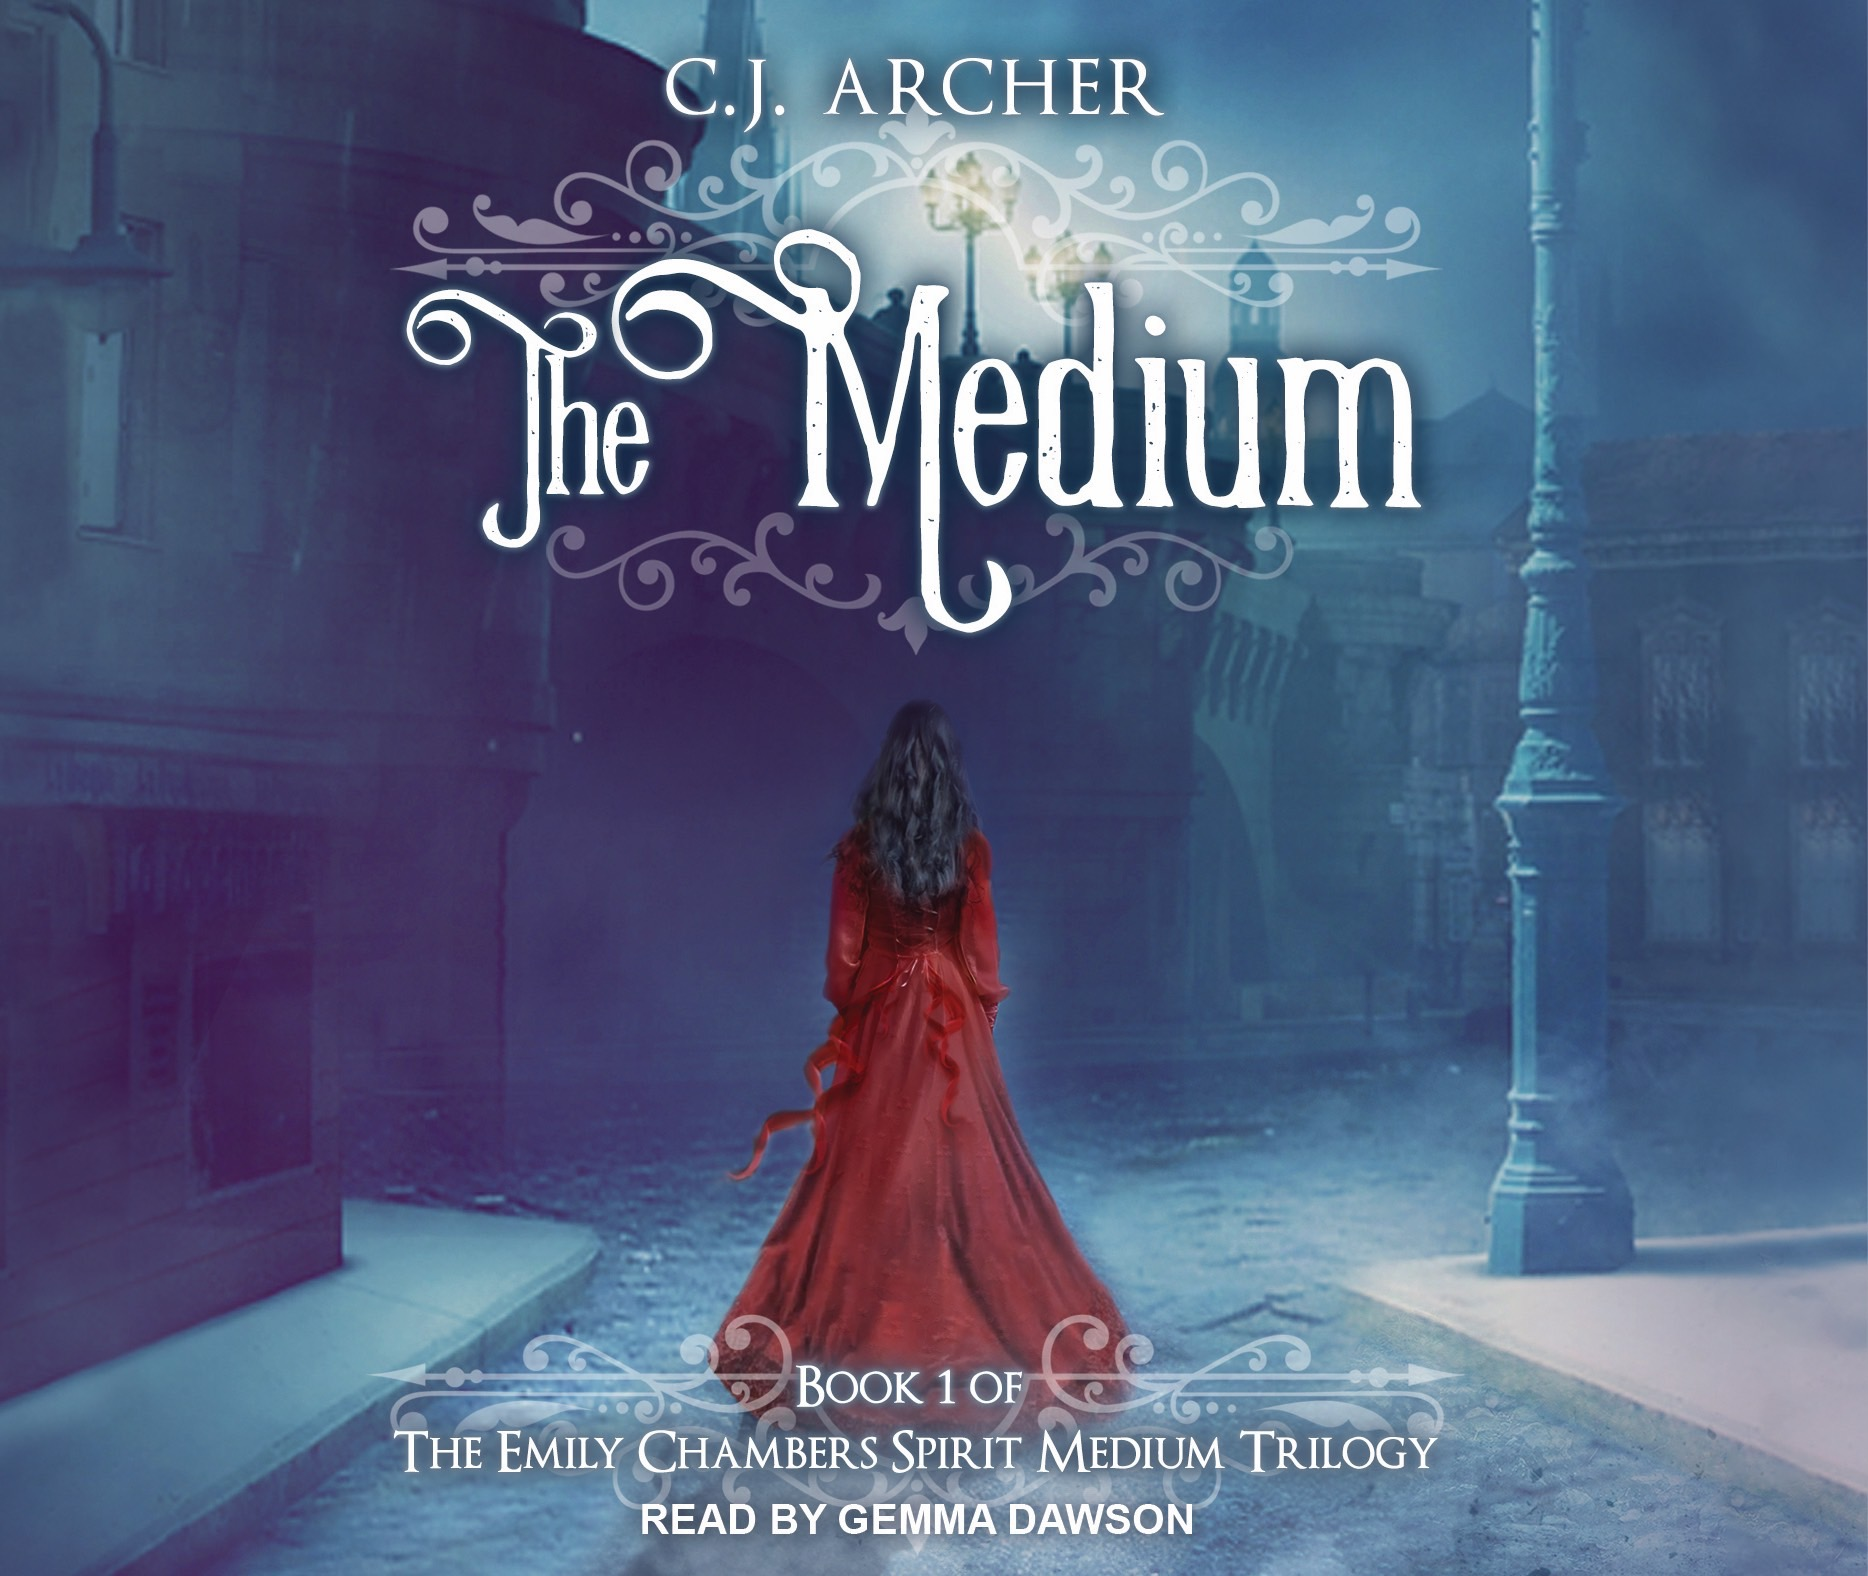 The Medium audiobook by CJ Archer